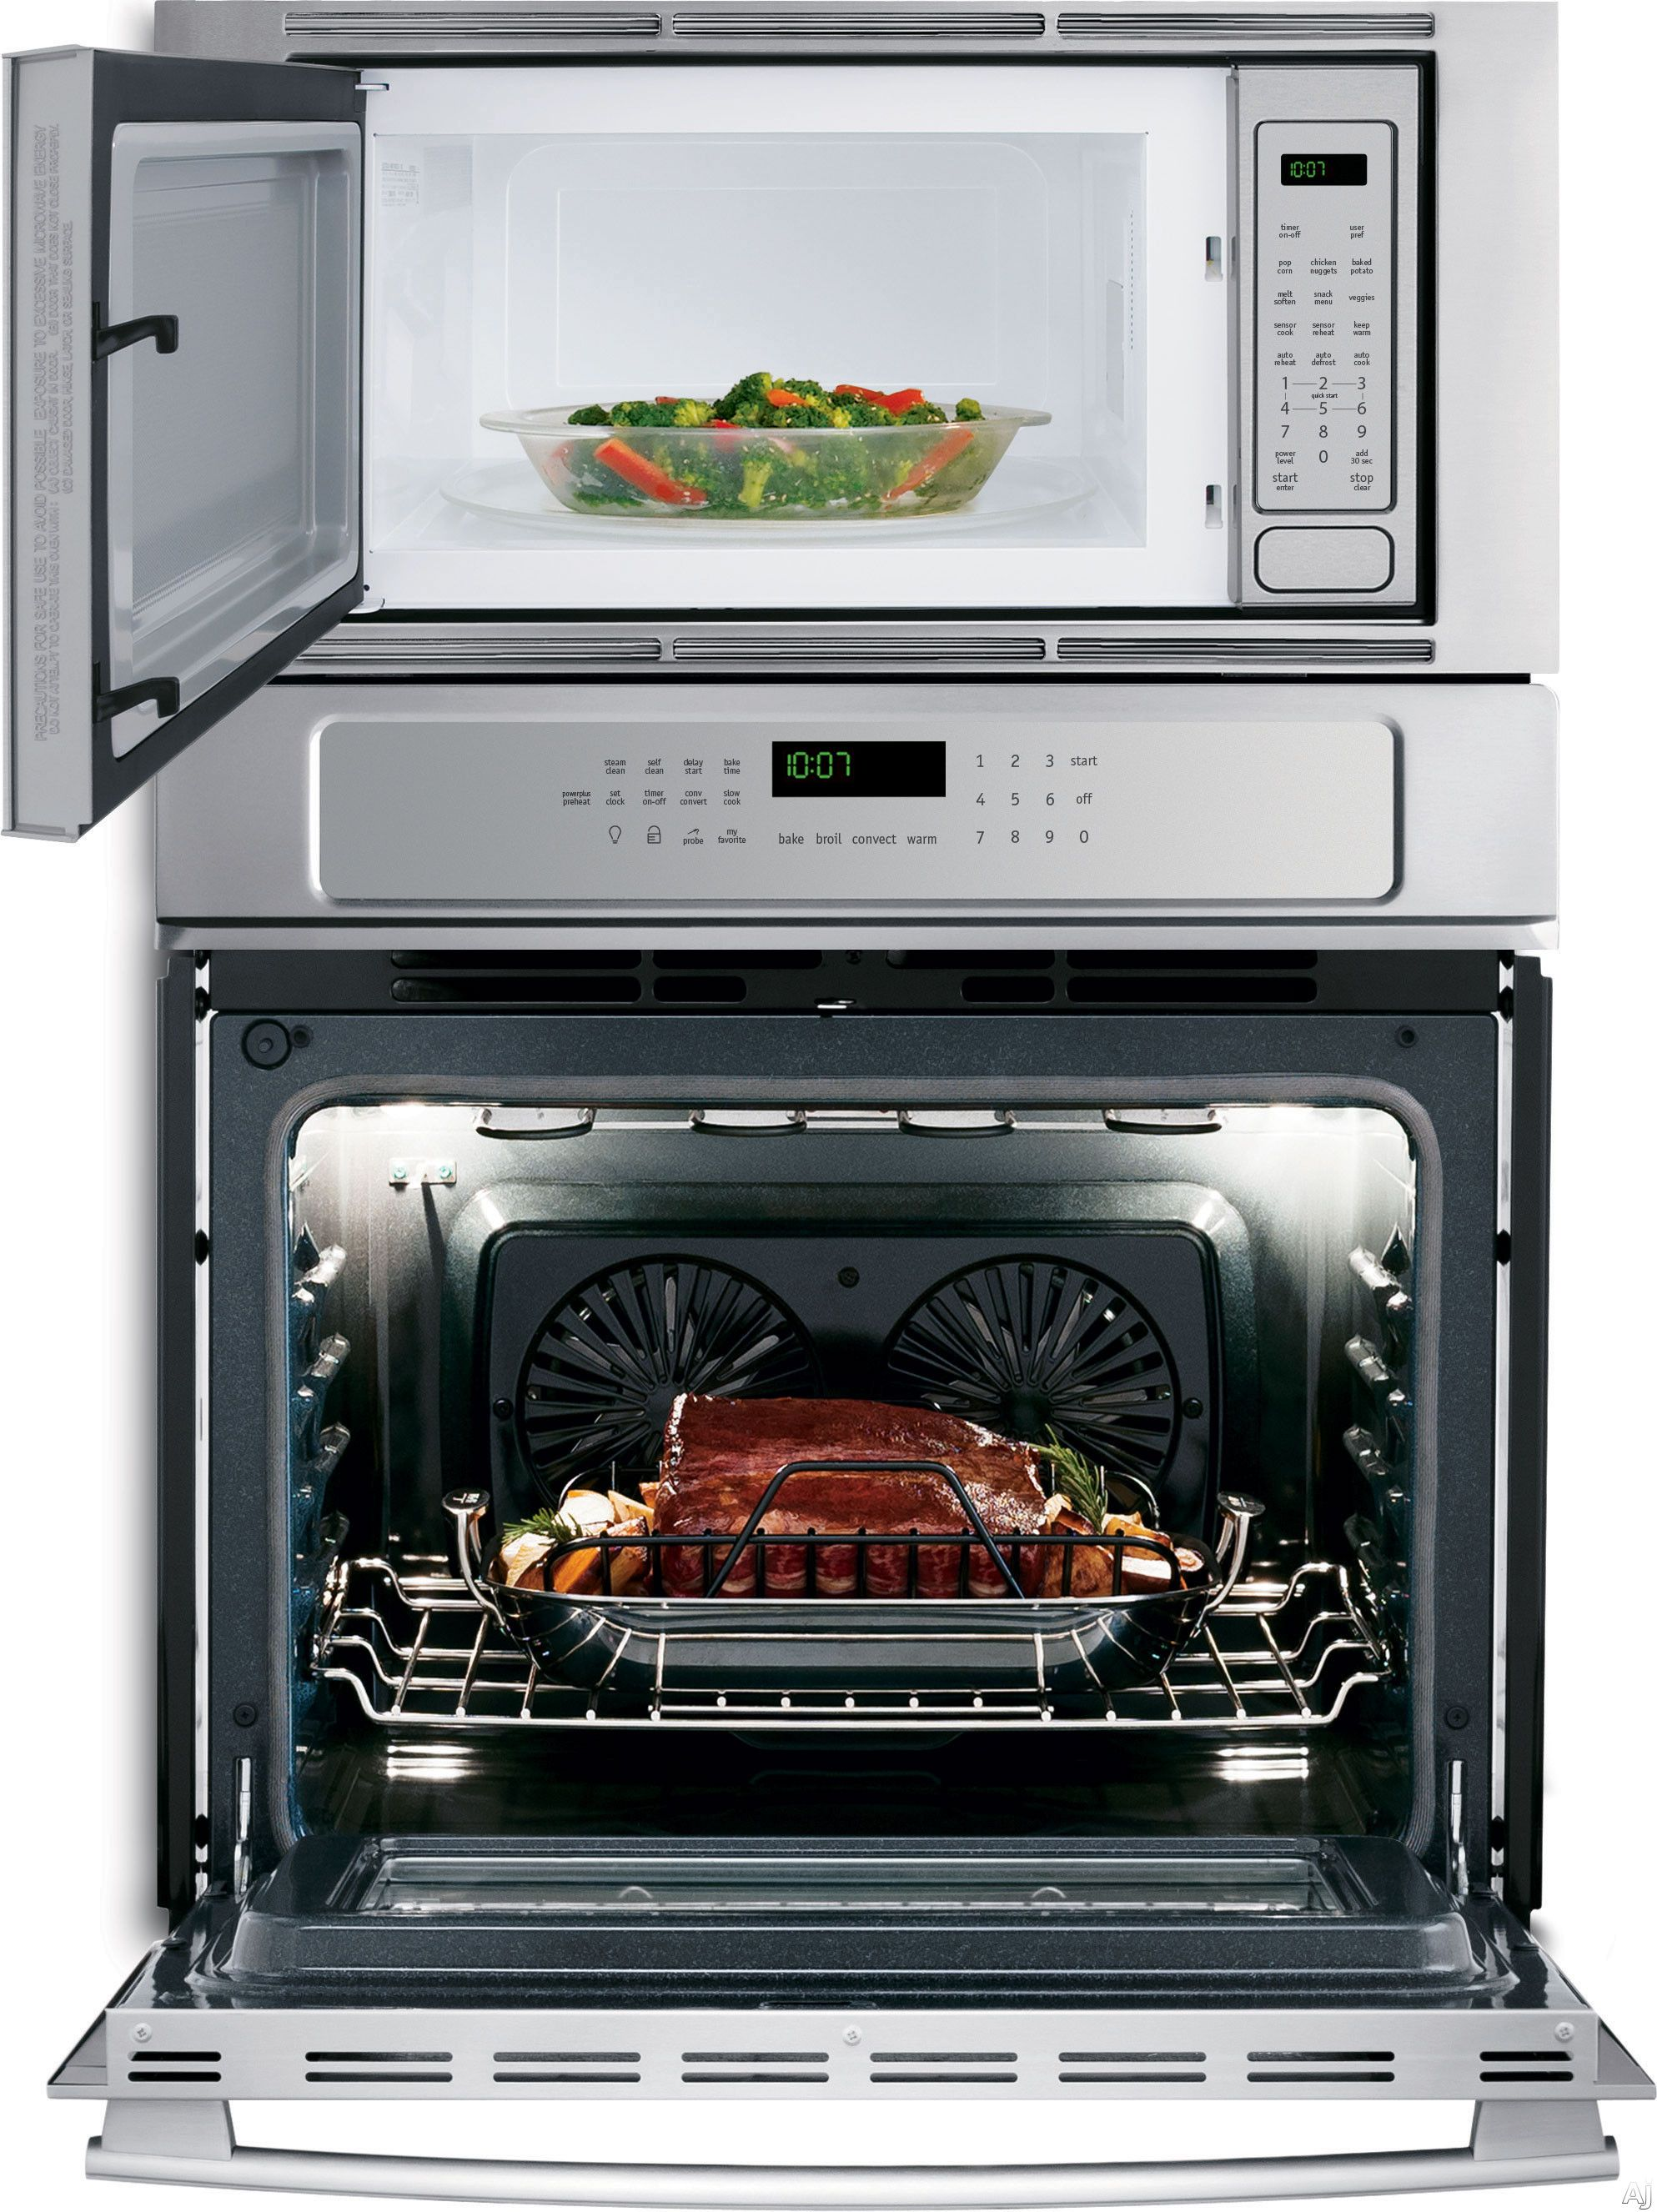 Suggested Replacements For Fpmc3085pf Combination Wall Oven Wall Oven Convection Oven